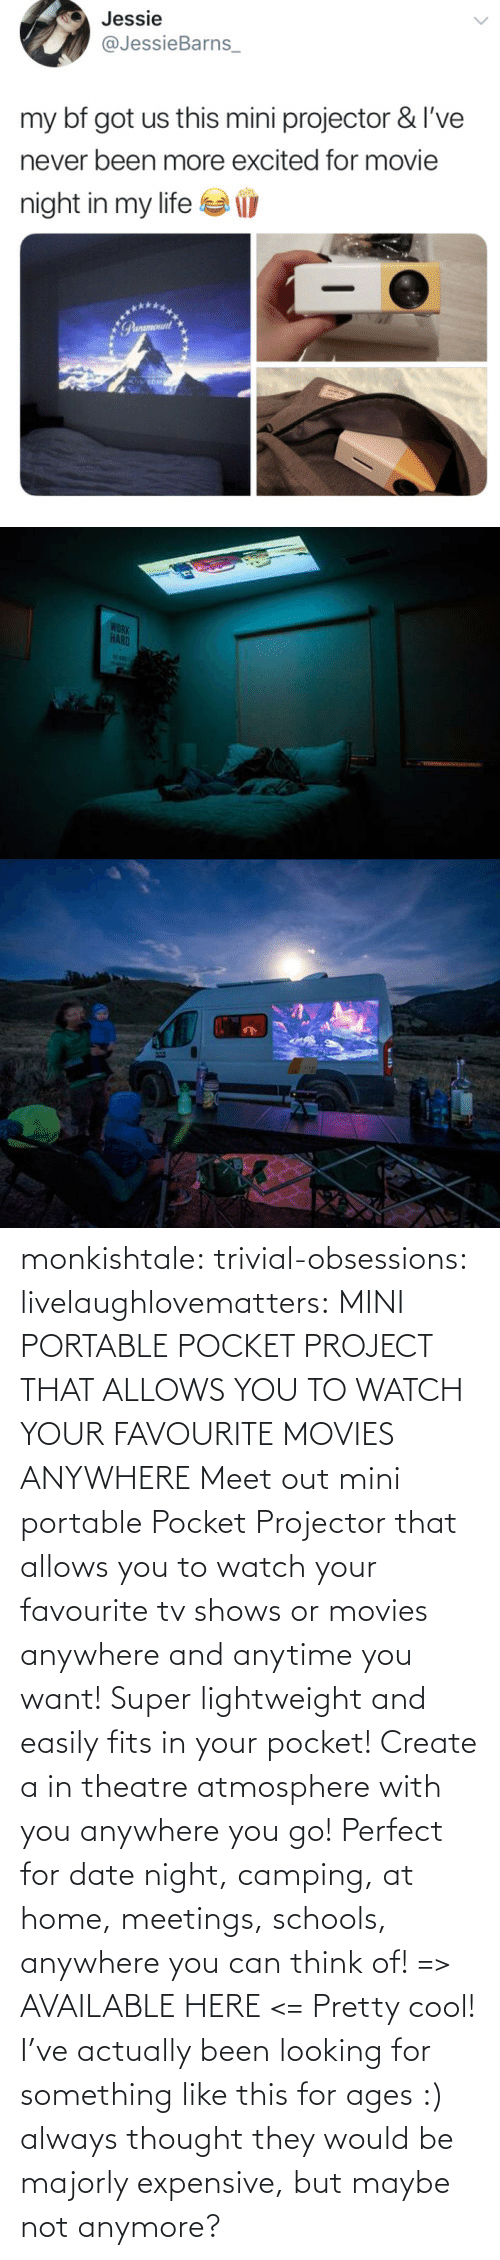 Here: monkishtale: trivial-obsessions:   livelaughlovematters:   MINI PORTABLE POCKET PROJECT THAT ALLOWS YOU TO WATCH YOUR FAVOURITE MOVIES ANYWHERE Meet out mini portable Pocket Projector that allows you to watch your favourite tv shows or movies anywhere and anytime you want! Super lightweight and easily fits in your pocket! Create a in theatre atmosphere with you anywhere you go! Perfect for date night, camping, at home, meetings, schools, anywhere you can think of! => AVAILABLE HERE <=    Pretty cool!    I've actually been looking for something like this for ages :) always thought they would be majorly expensive, but maybe not anymore?